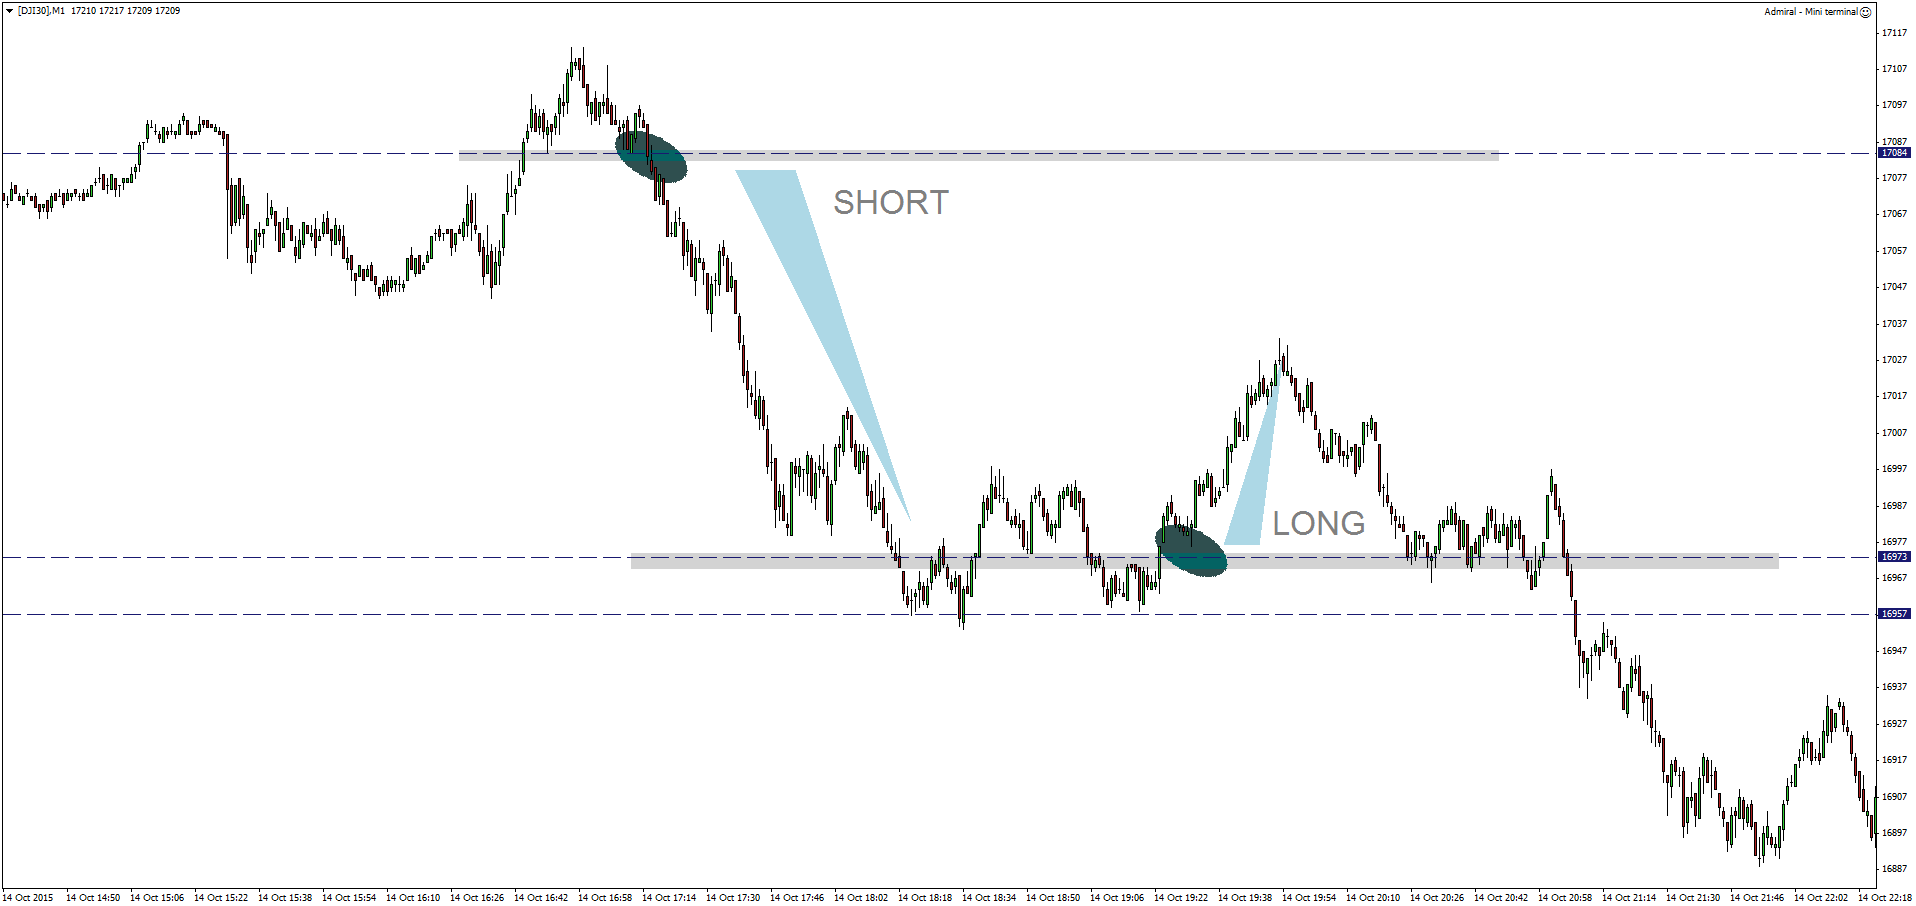 Open positions long short forex